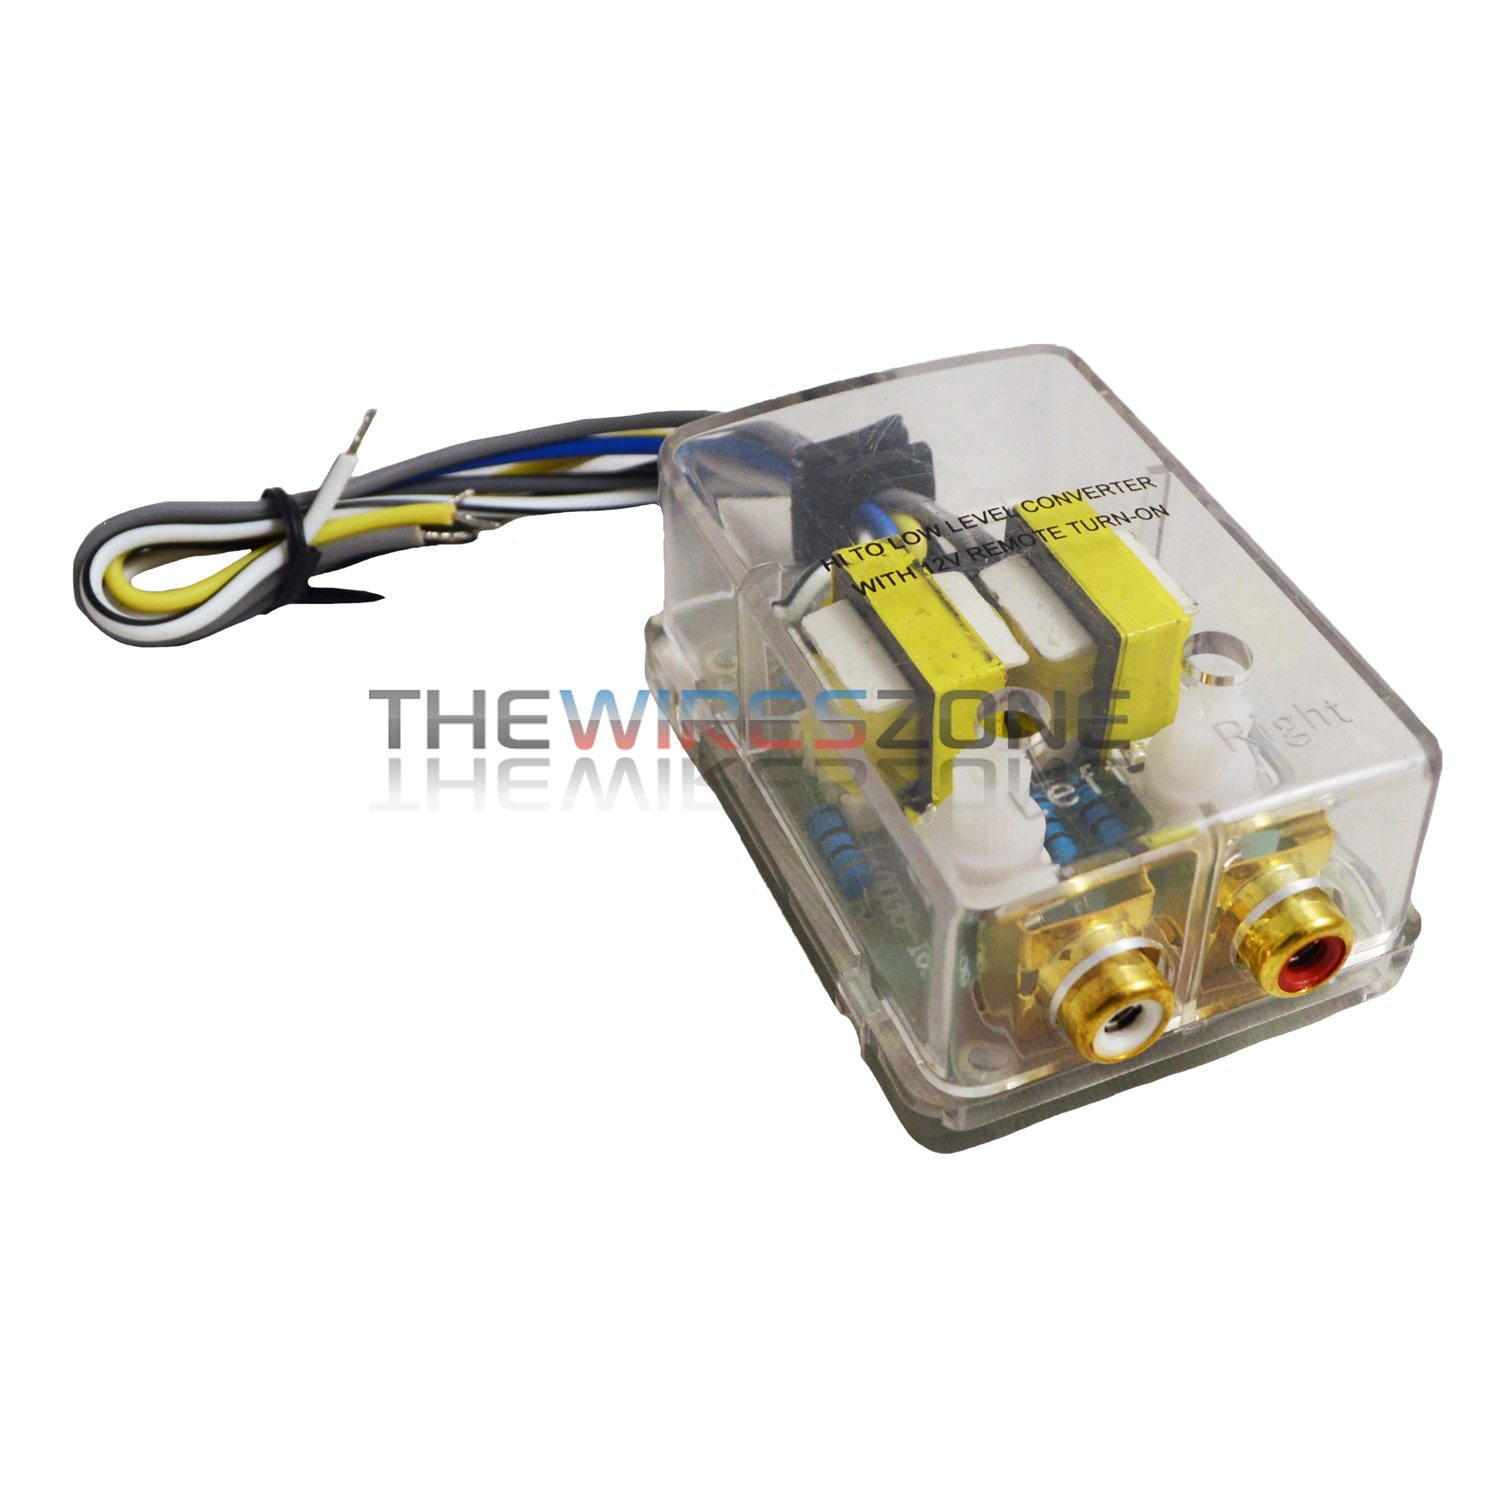 2-Channel High to Low Line Output Converter w/ Built-in 12 Volt Remote Turn-On